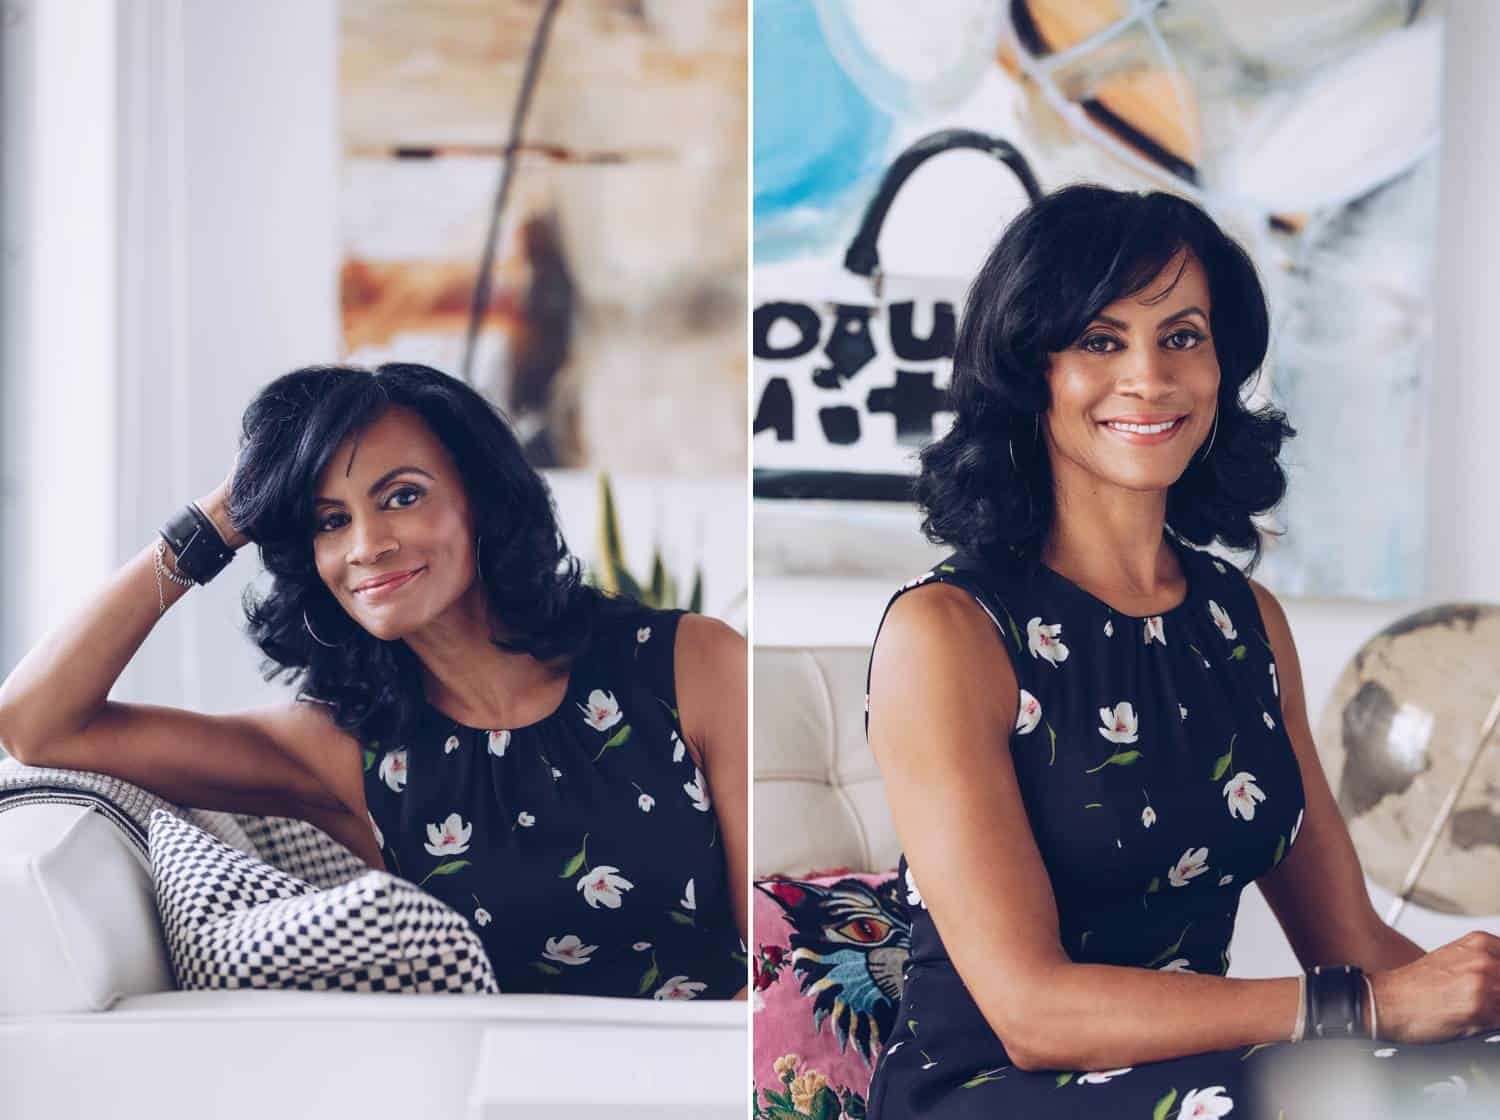 Two of Lauren Alexis' headshots are displayed side by side. In this series, a Latinx woman is photographed wearing a sleeveless, floral, navy blue dress. In the left image, she's sitting on a white leather couch with her elbow propped on the back of the sofa. In the right side image, she sits at a desk and appears prepared to work.